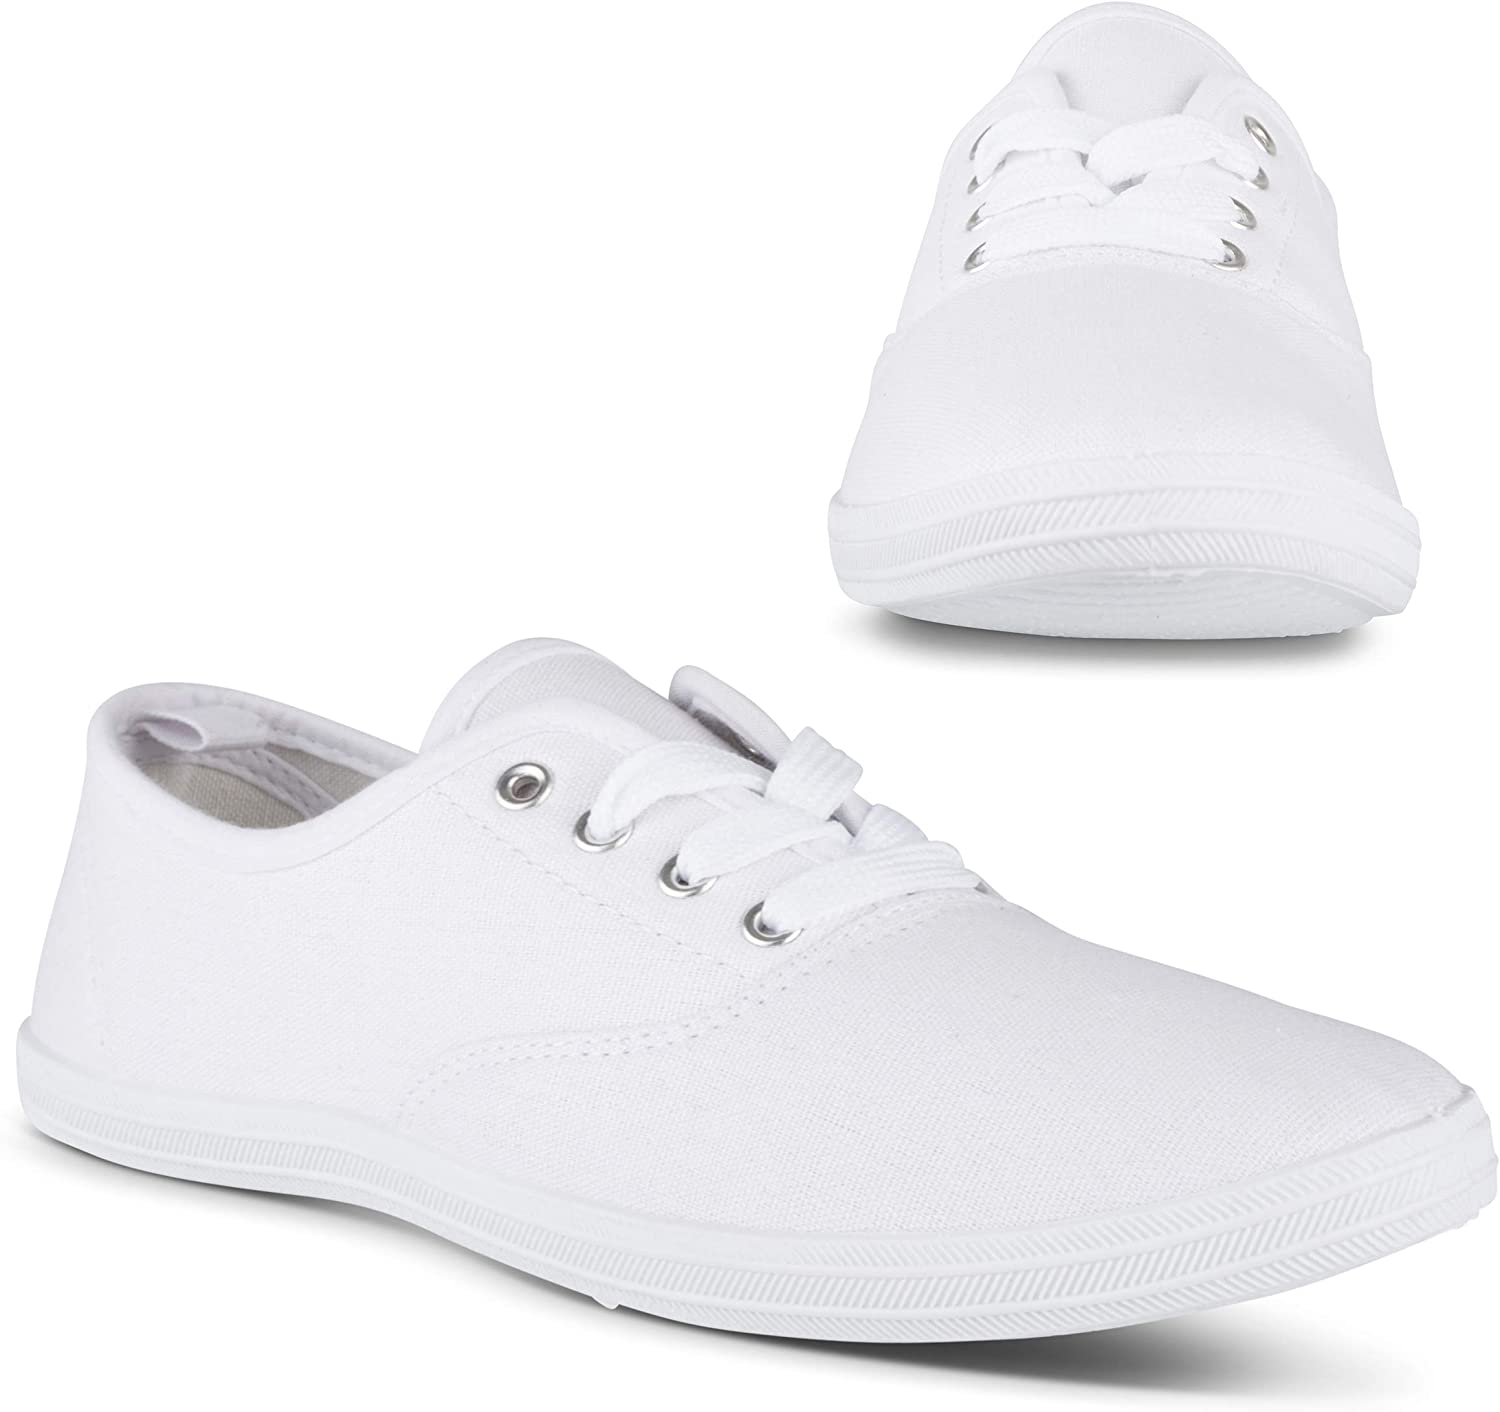 Twisted Tennis Shoes Regular discount for Women Low Sales sale Casu Up Lace Sneakers Rise